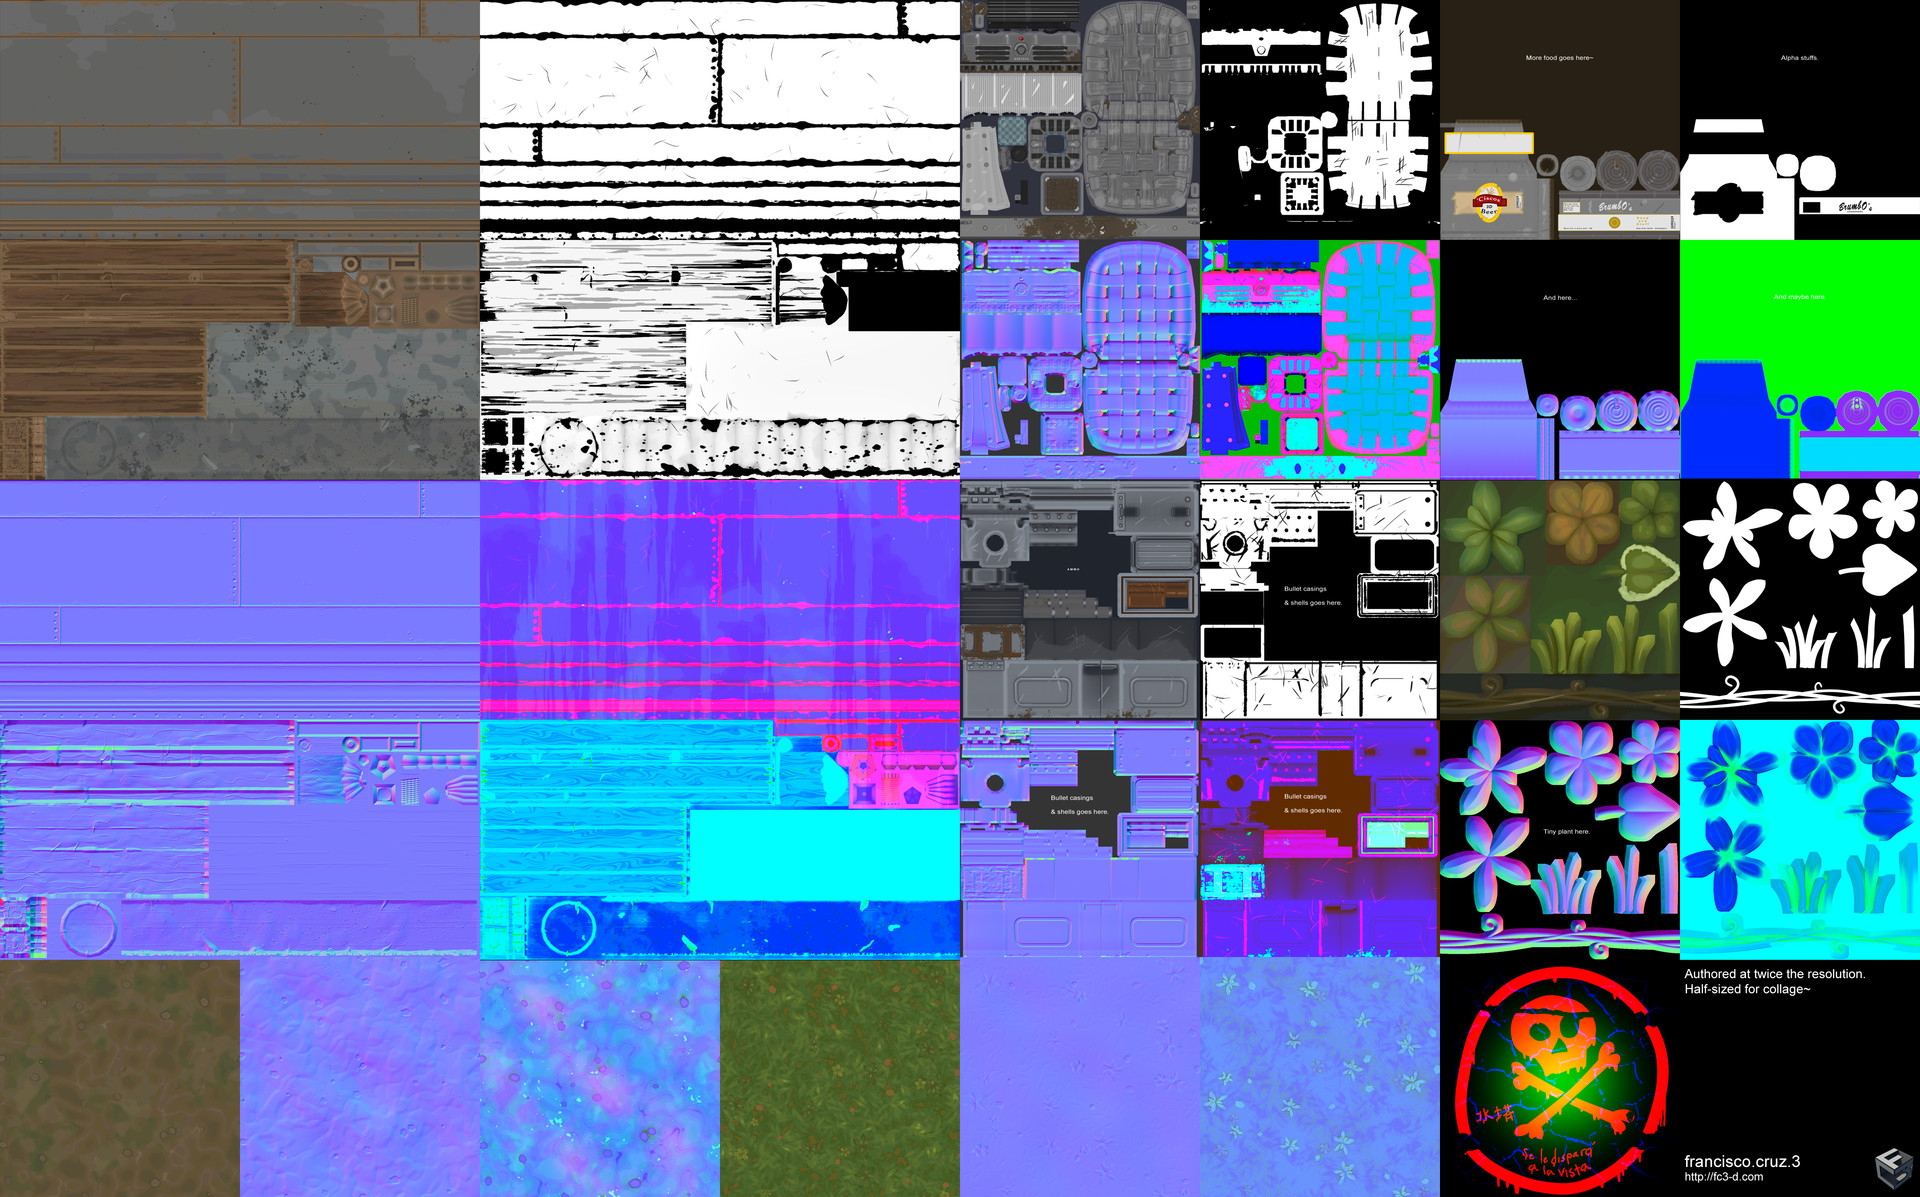 Collage of textures used. Main tower textures at 1024 x 1024 x 3 (Base color + mask in its alpha channel, normal, & RGB pack to control metal, roughness, and ambient occlusion). Props using a 512 x 512 x 3.